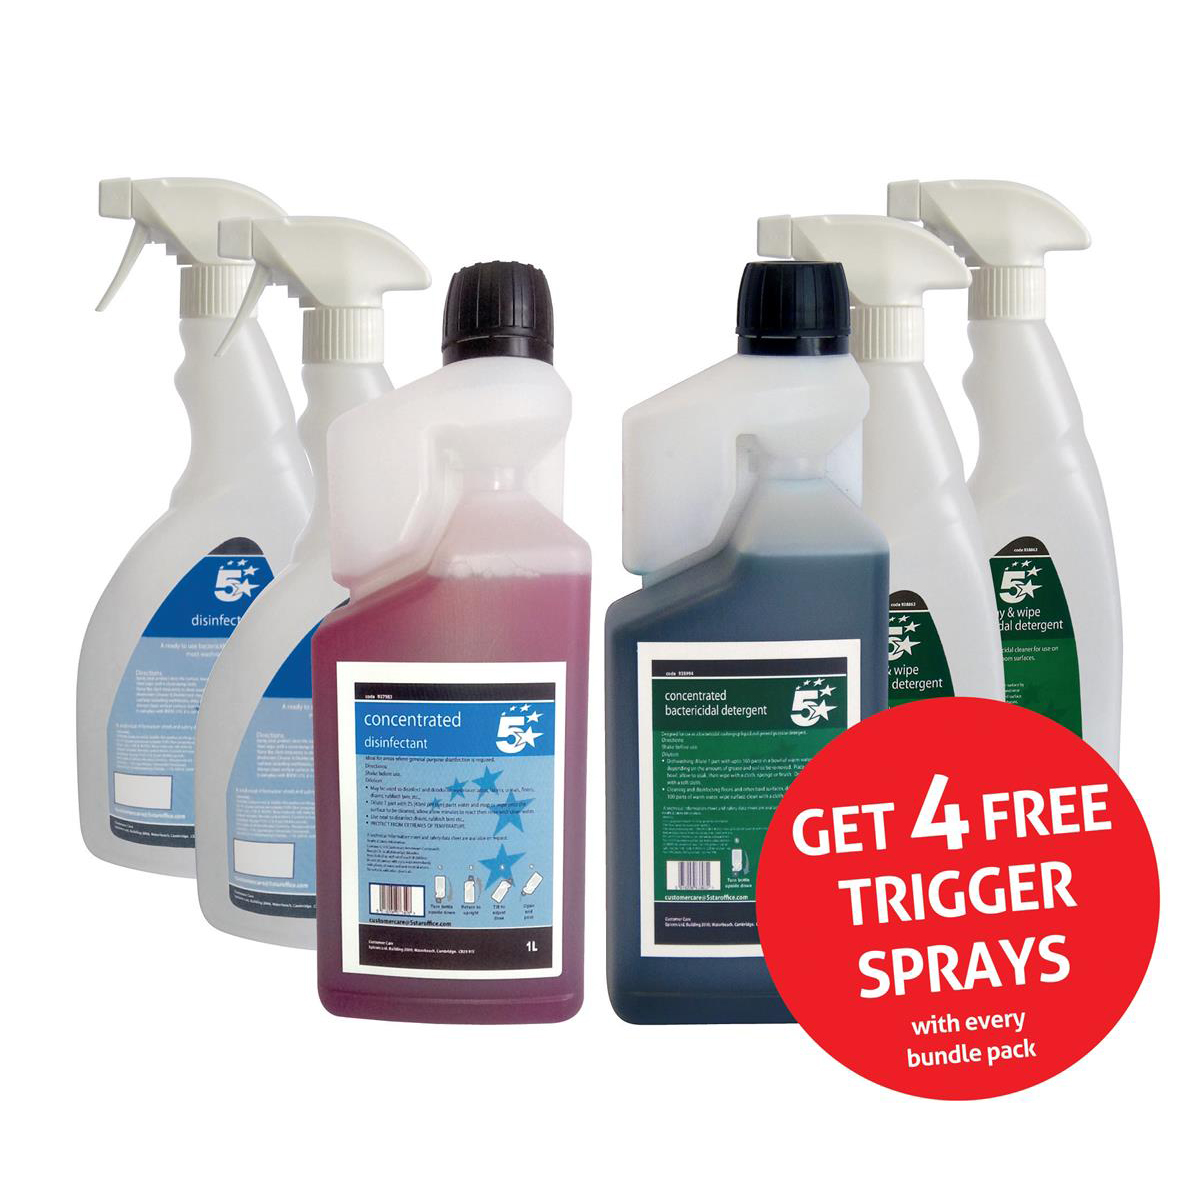 5 Star Facilities Disinfectant & Bactericidal Detergent Concentrated 1 Litre FREE 750ml Trigger Bottles